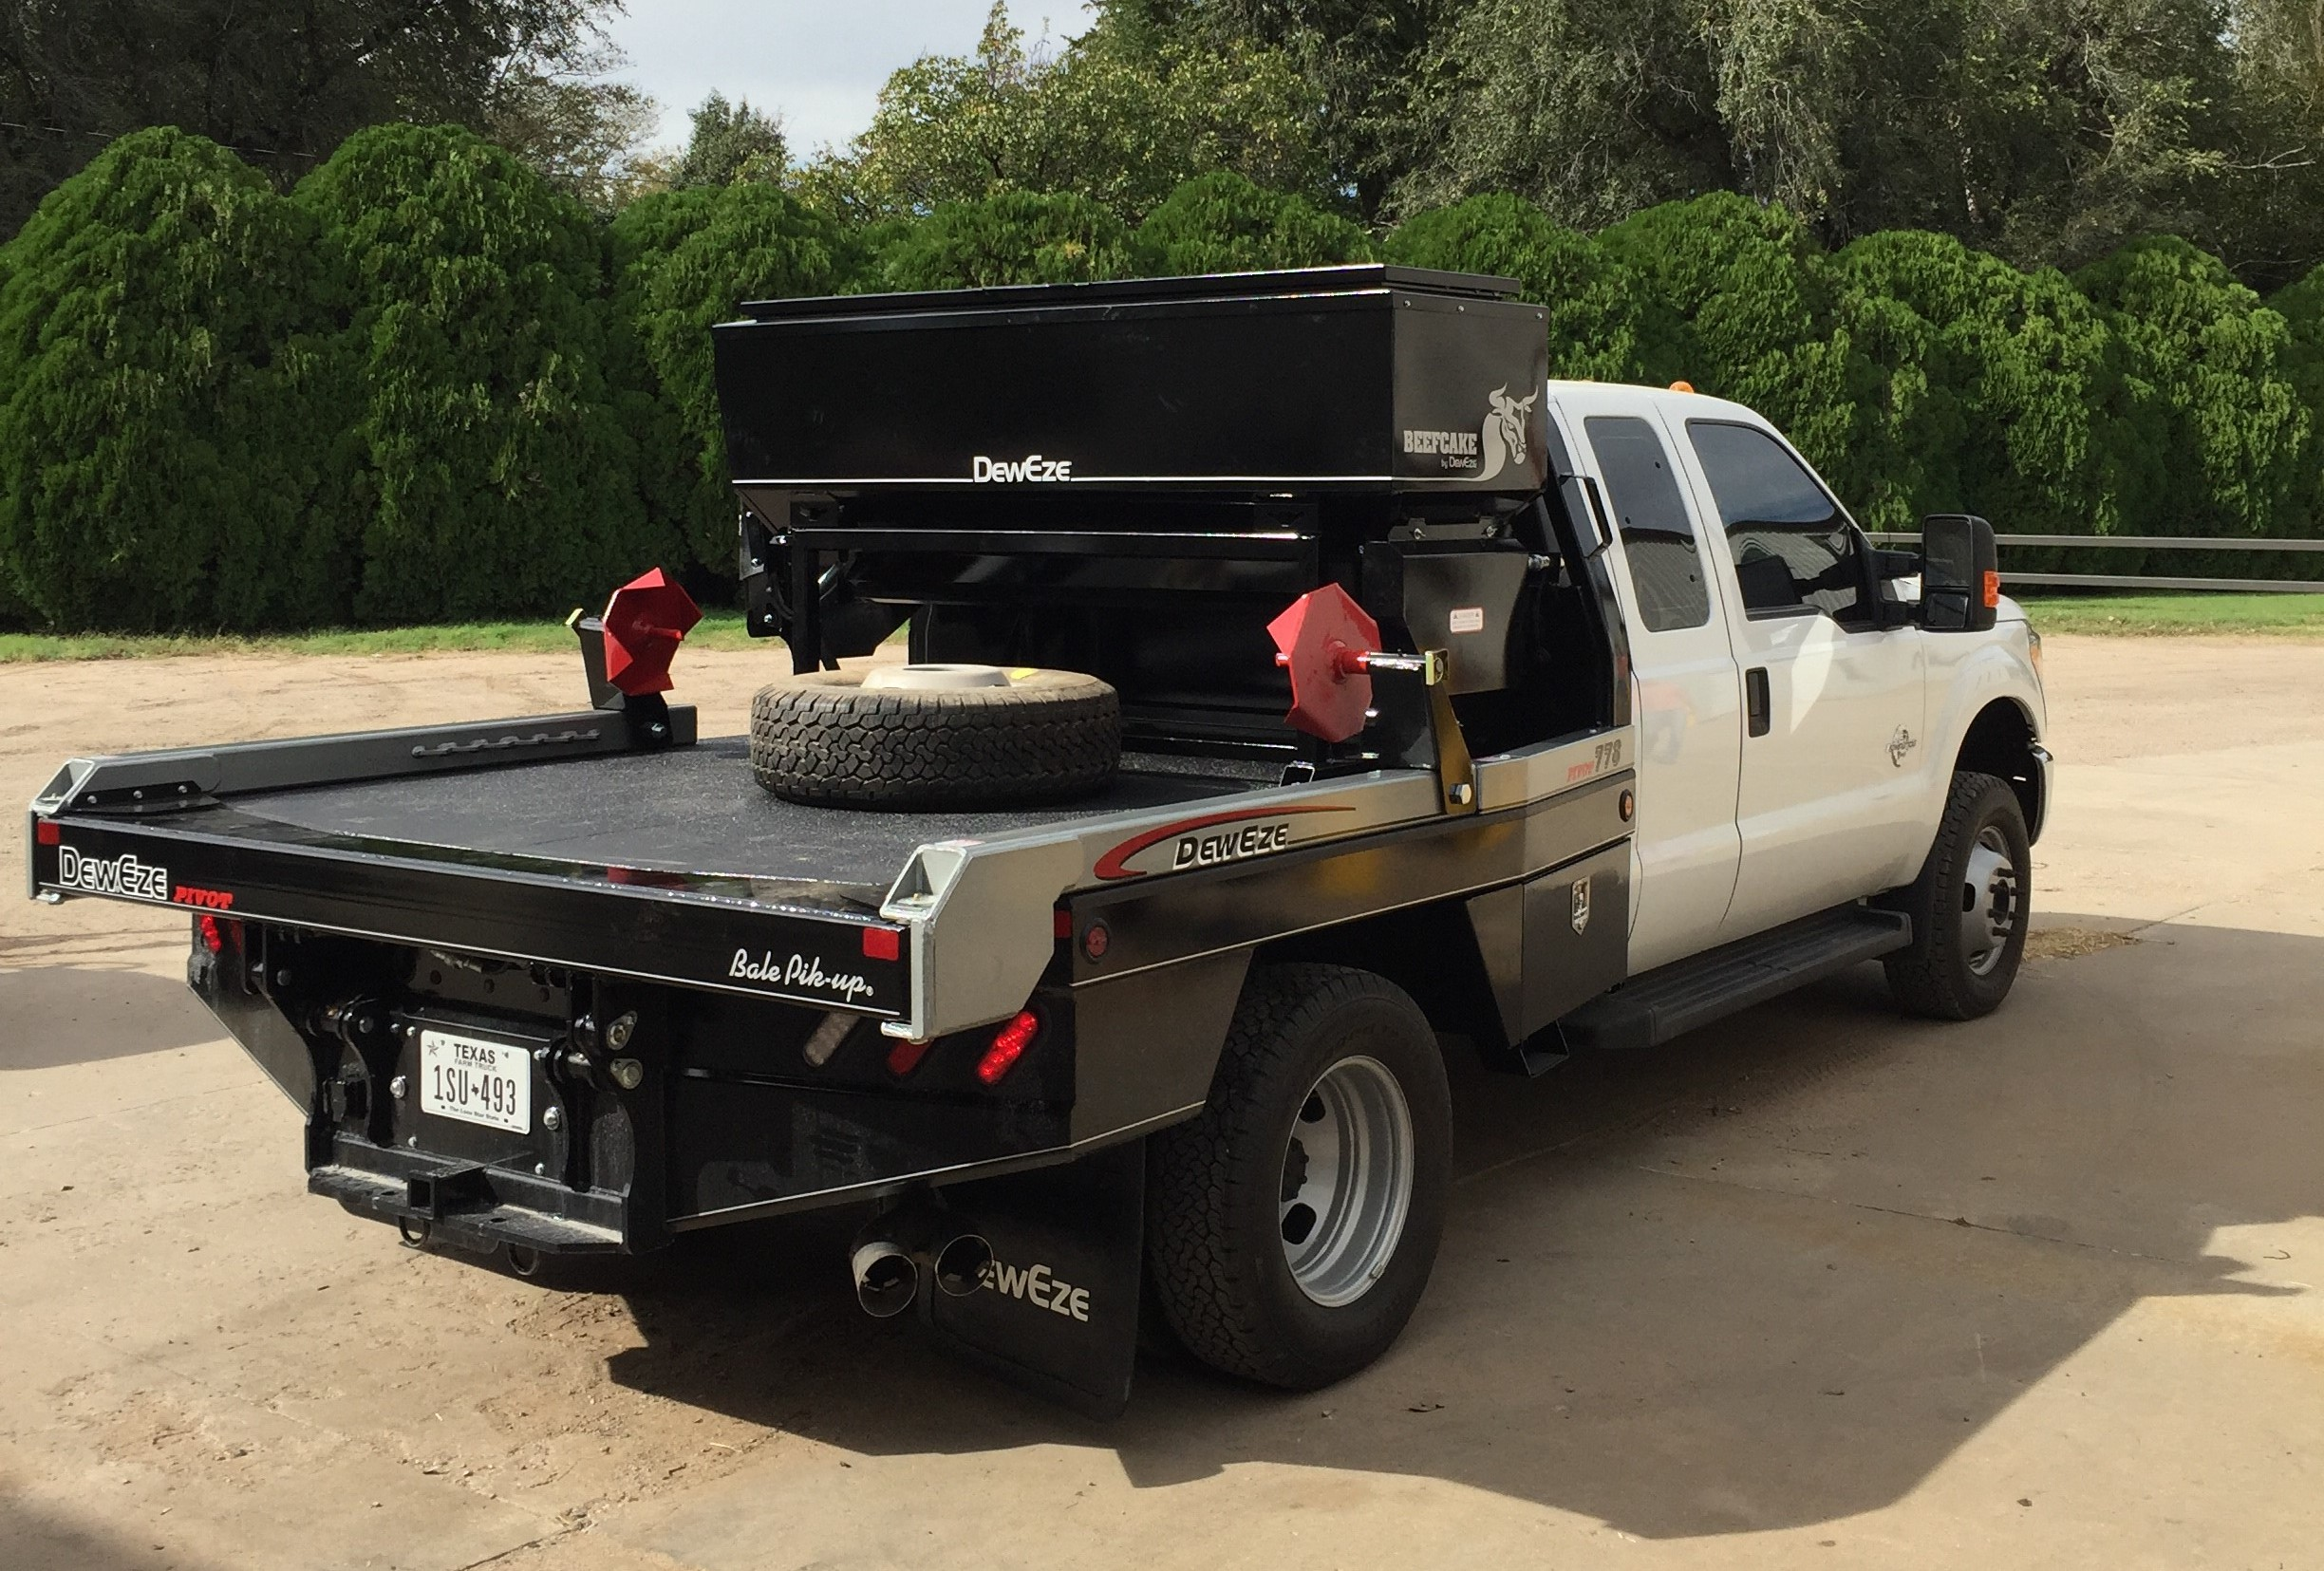 Used Deweze Truck Beds For Sale